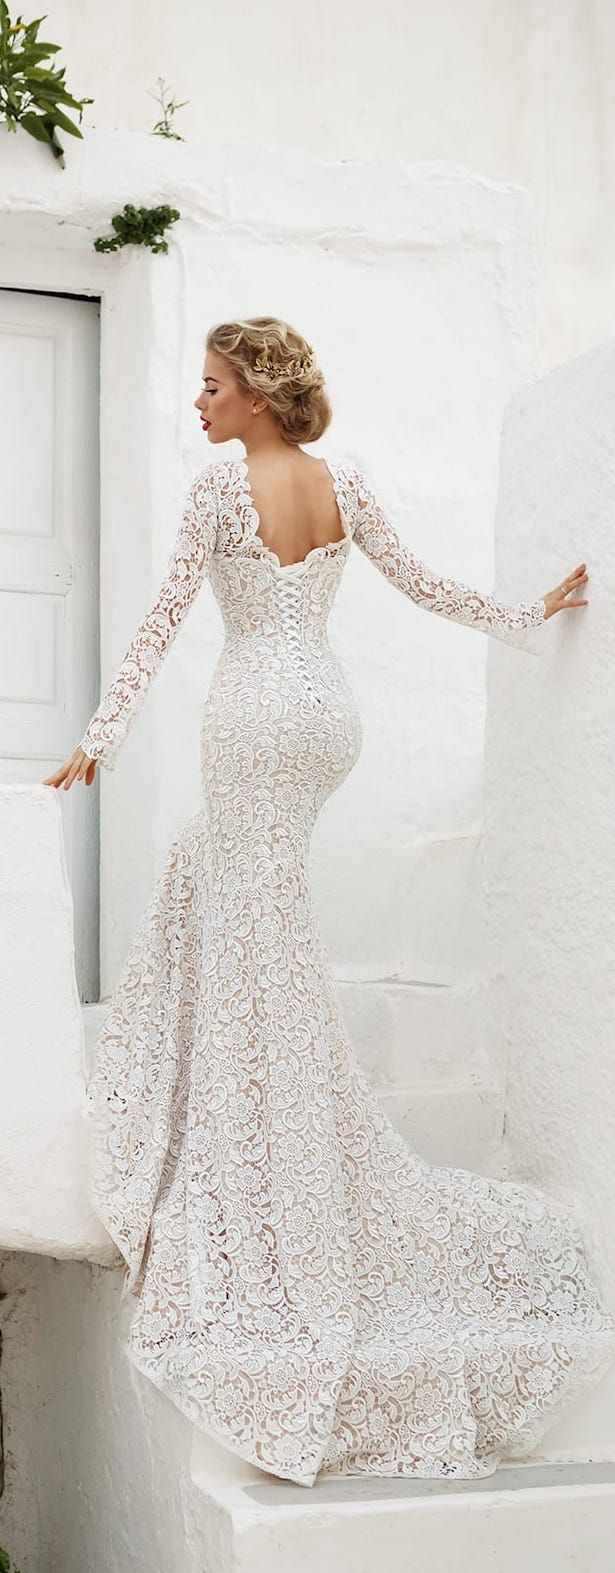 dress gallery; dress board; Featured Dress: Lanesta Bridal